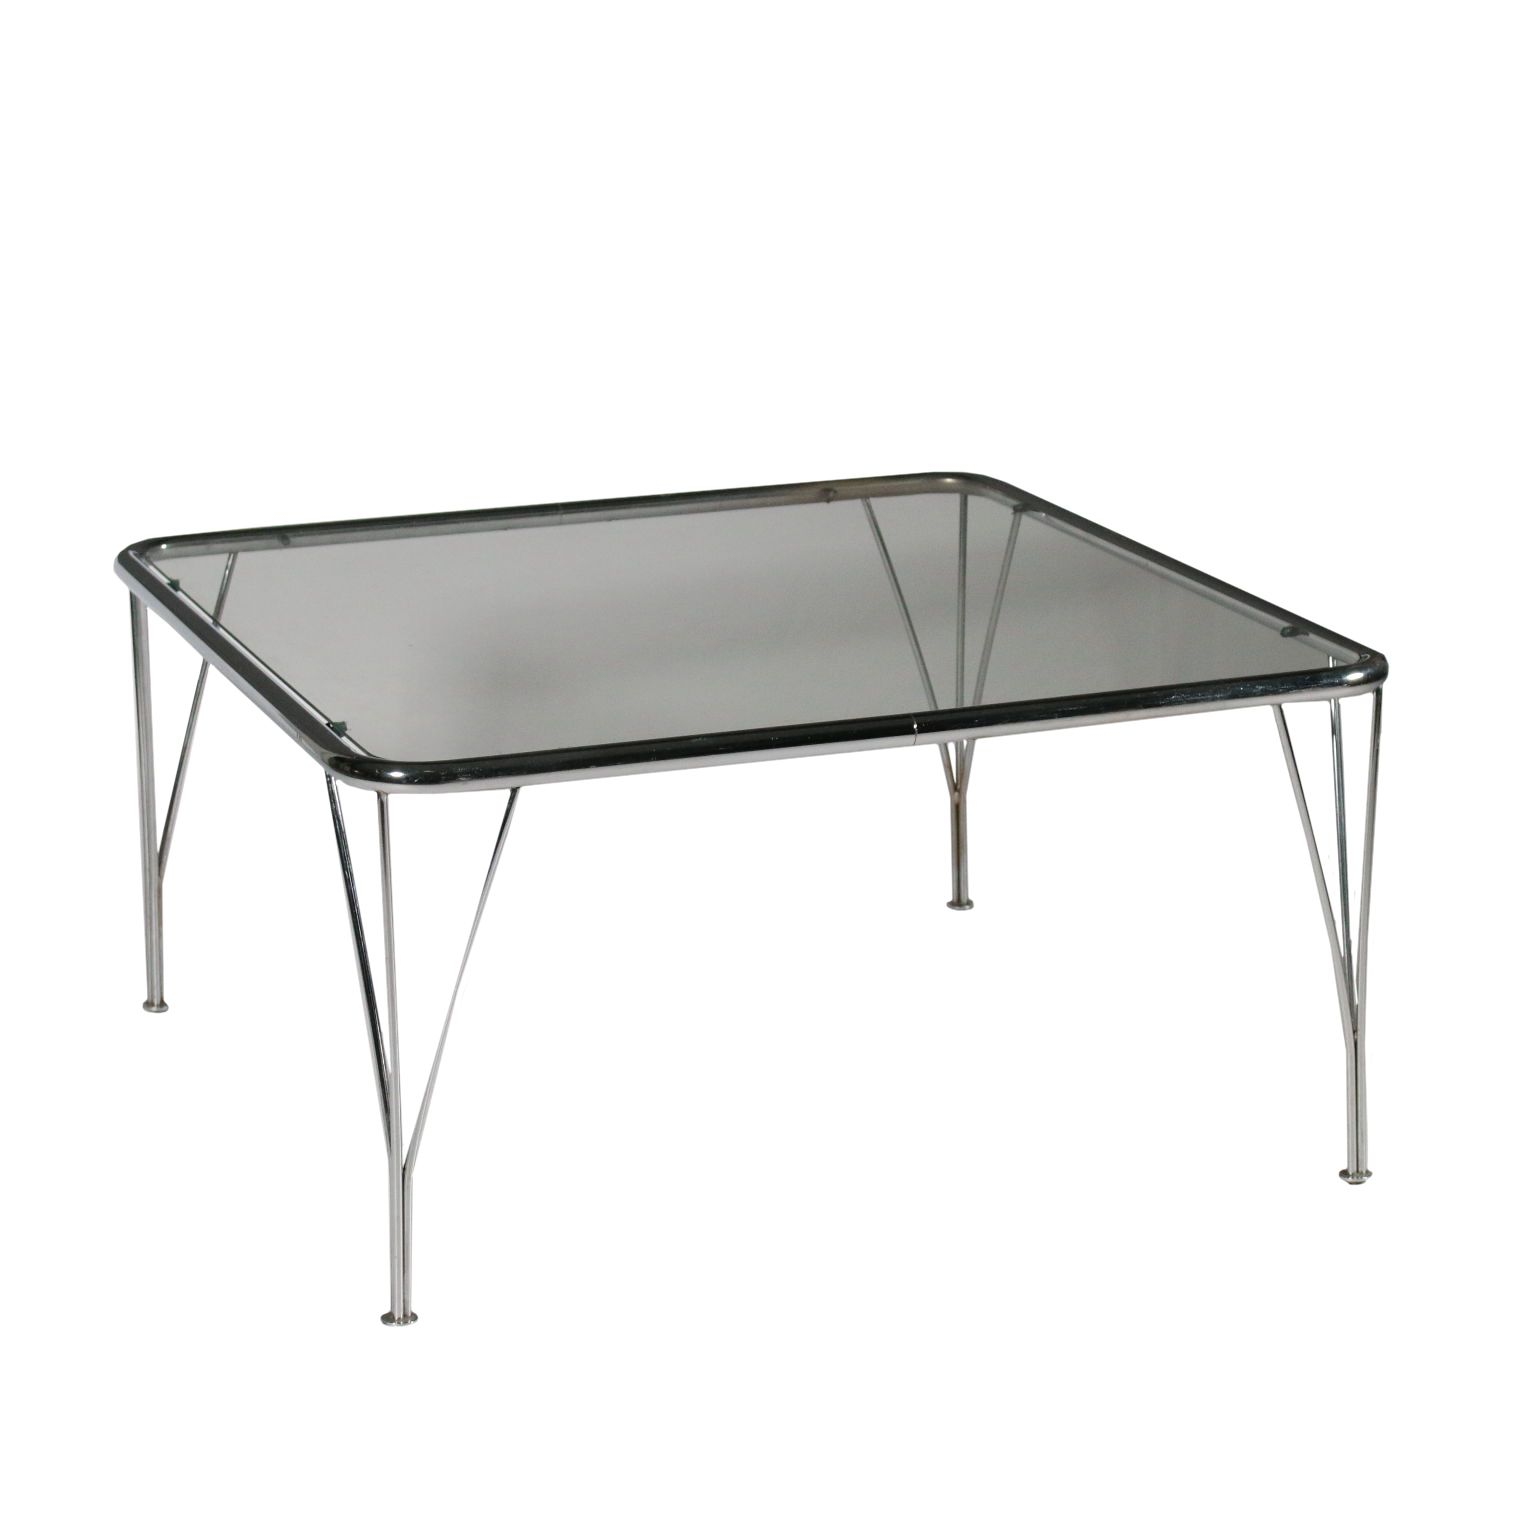 Vintage Et Deco Petite Table Metal Chrome Verre Italie Annees 70 80 Petite Table Metal Chromee Verre Fabri Table Metal Table Metal Bois Table Basse Metal